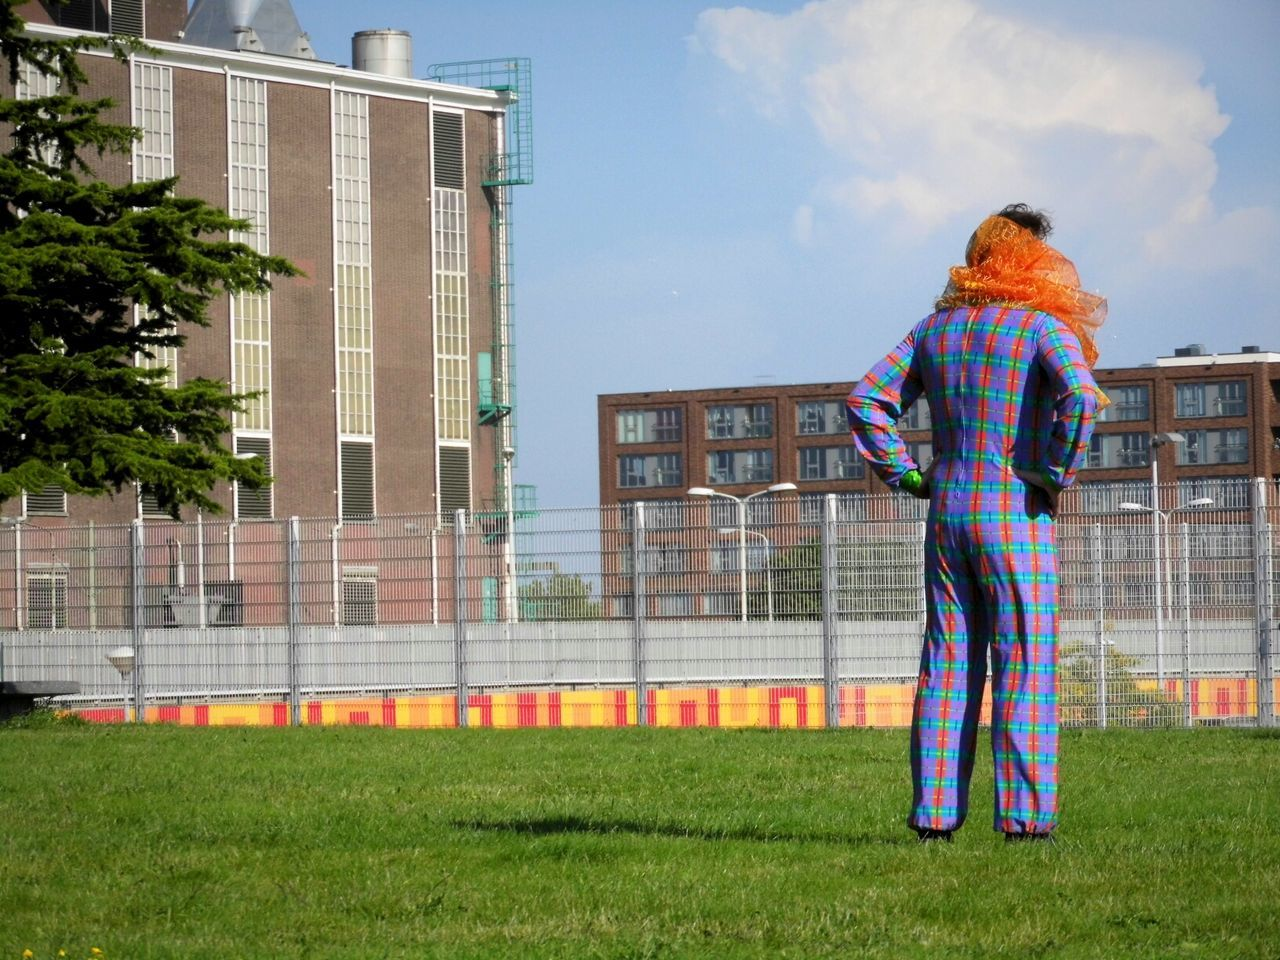 Beautiful stock photos of clown, building exterior, architecture, real people, full length